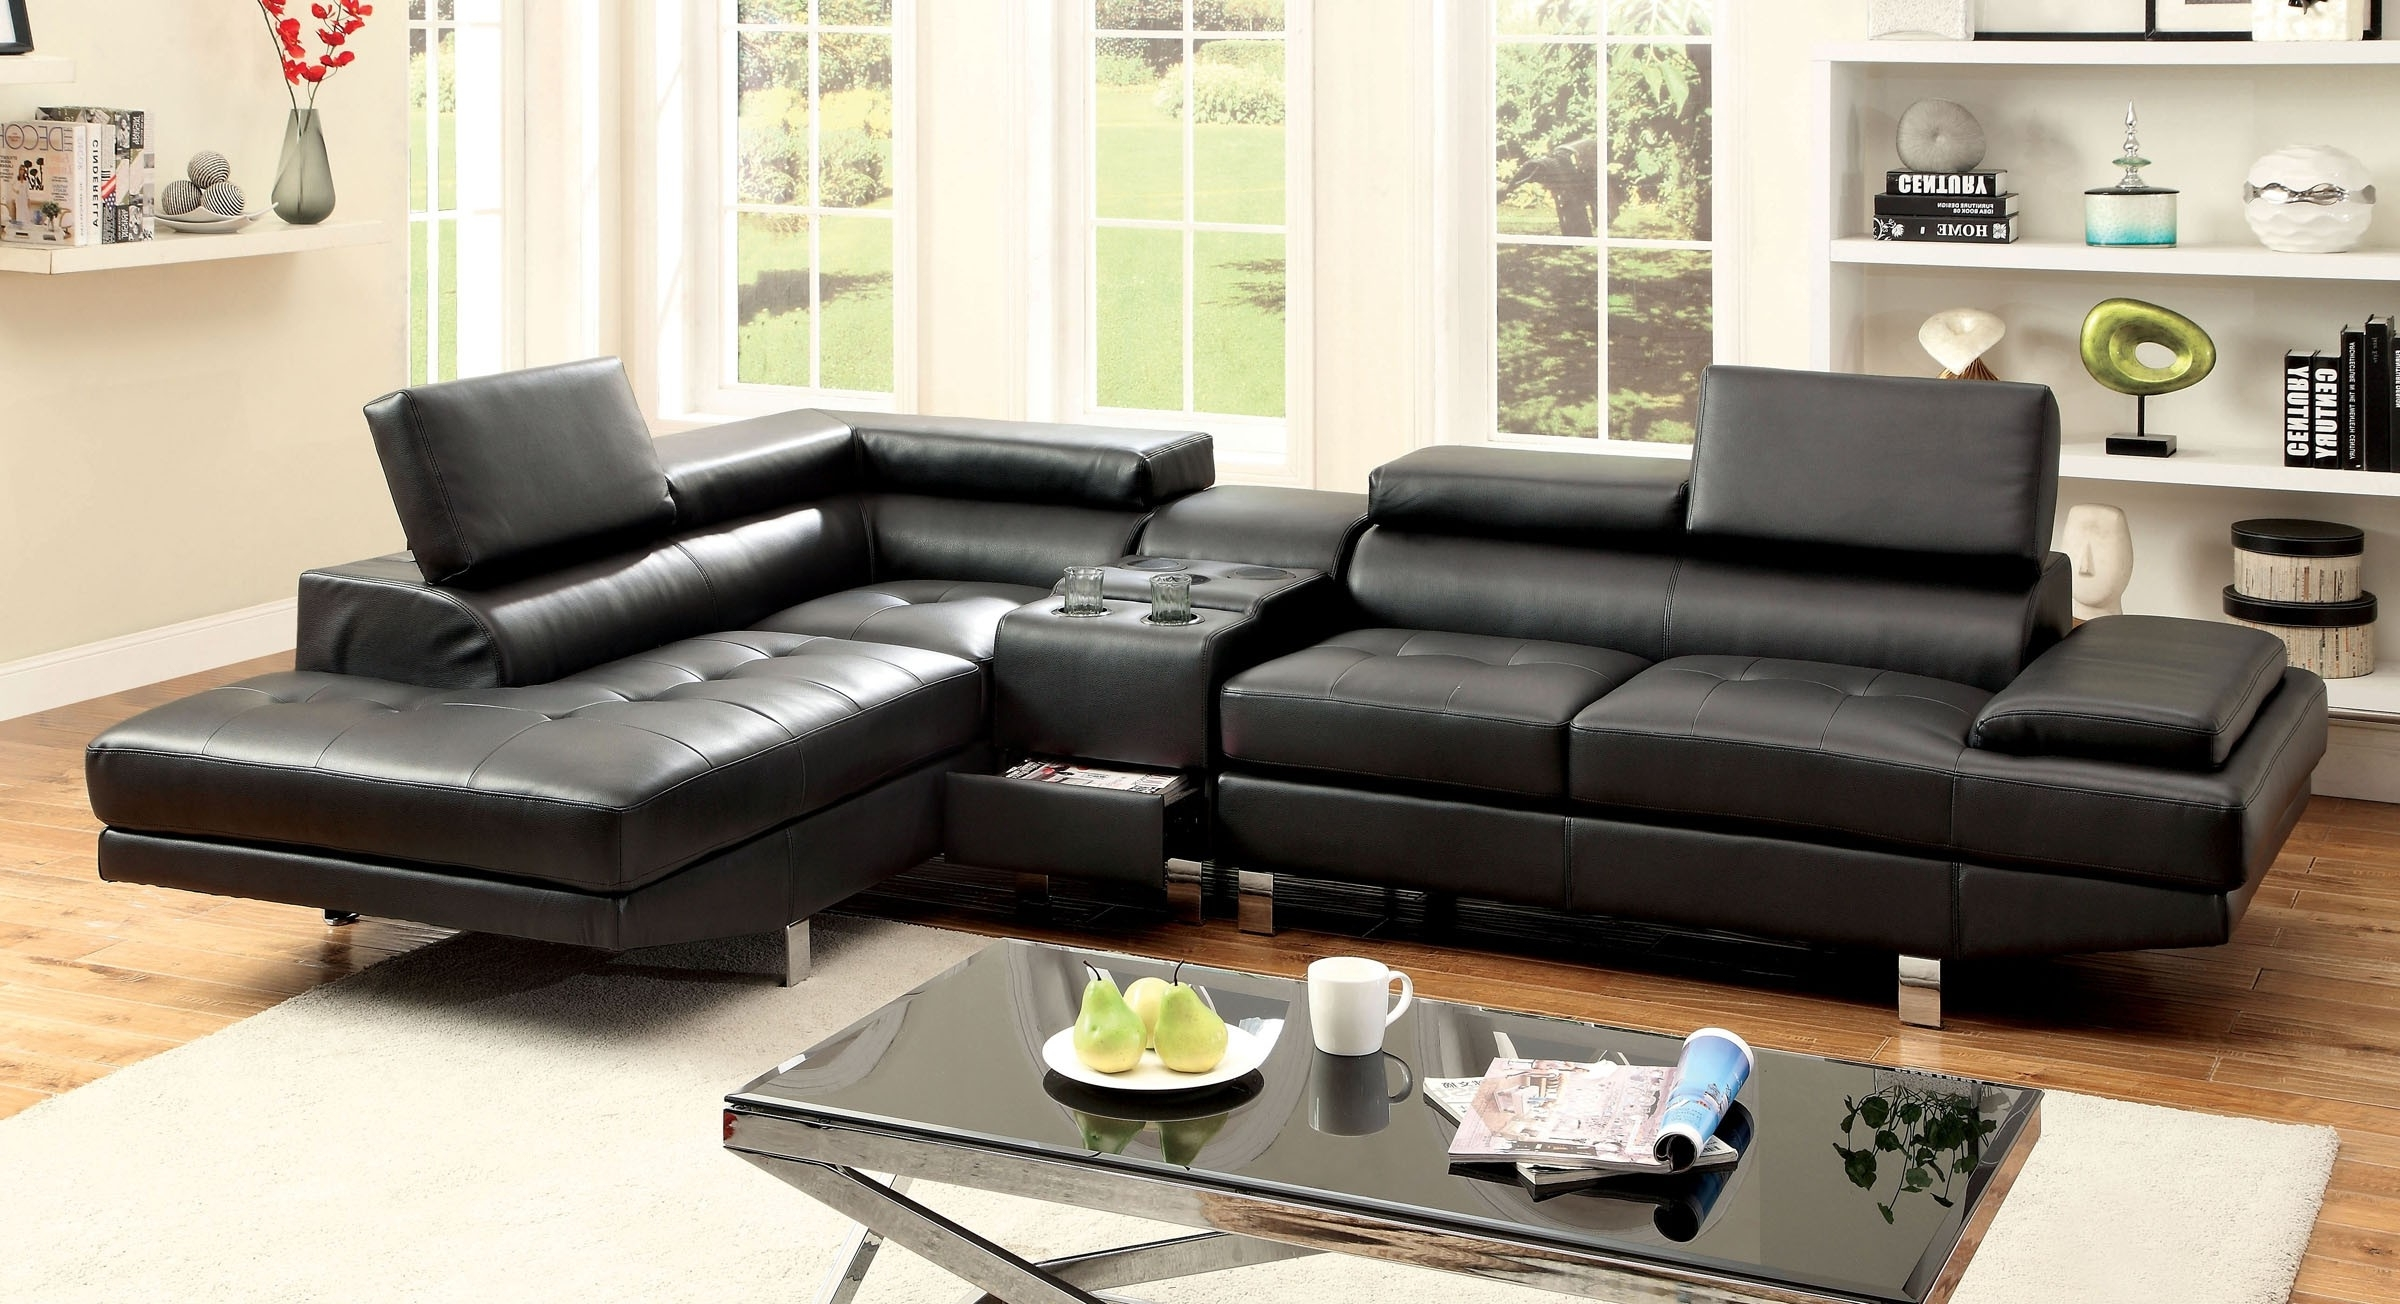 Sectional Sofa W/ Speaker Console (Cm6833Bk ) (View 12 of 15)